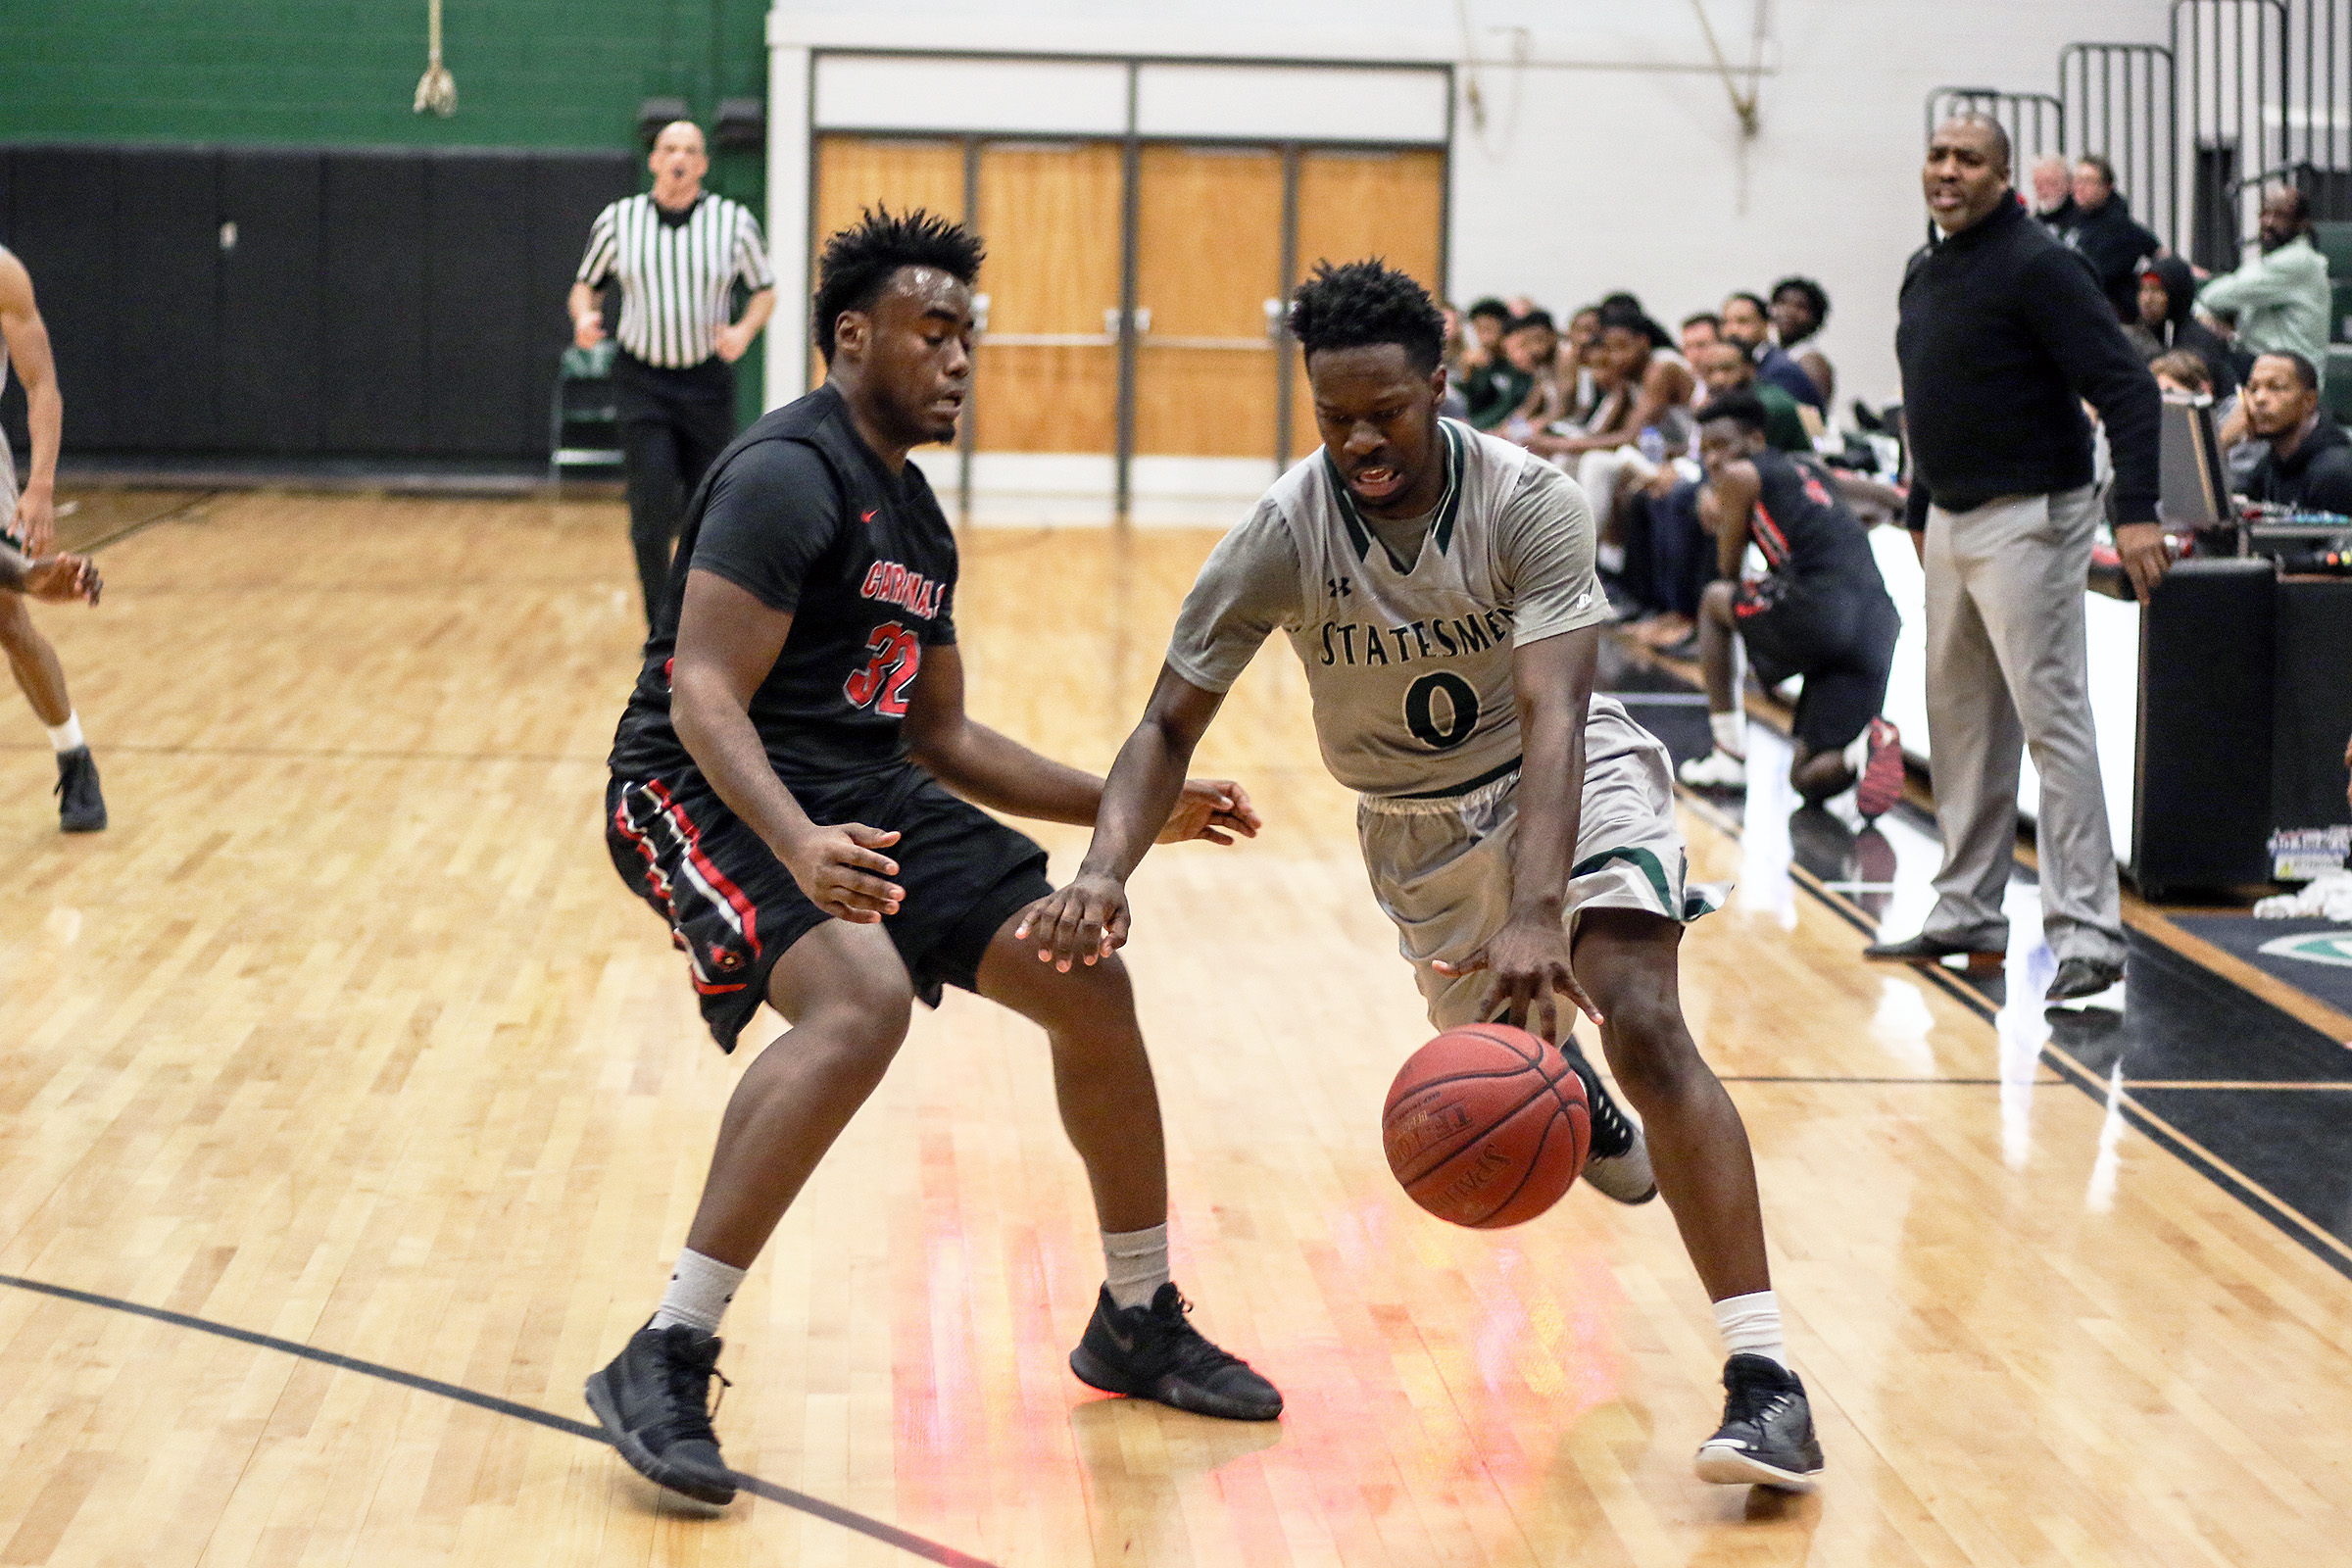 No. 7 Richard Bland Men's Basketball Rallies Past CCBC Catonsville (Md.) 89-82